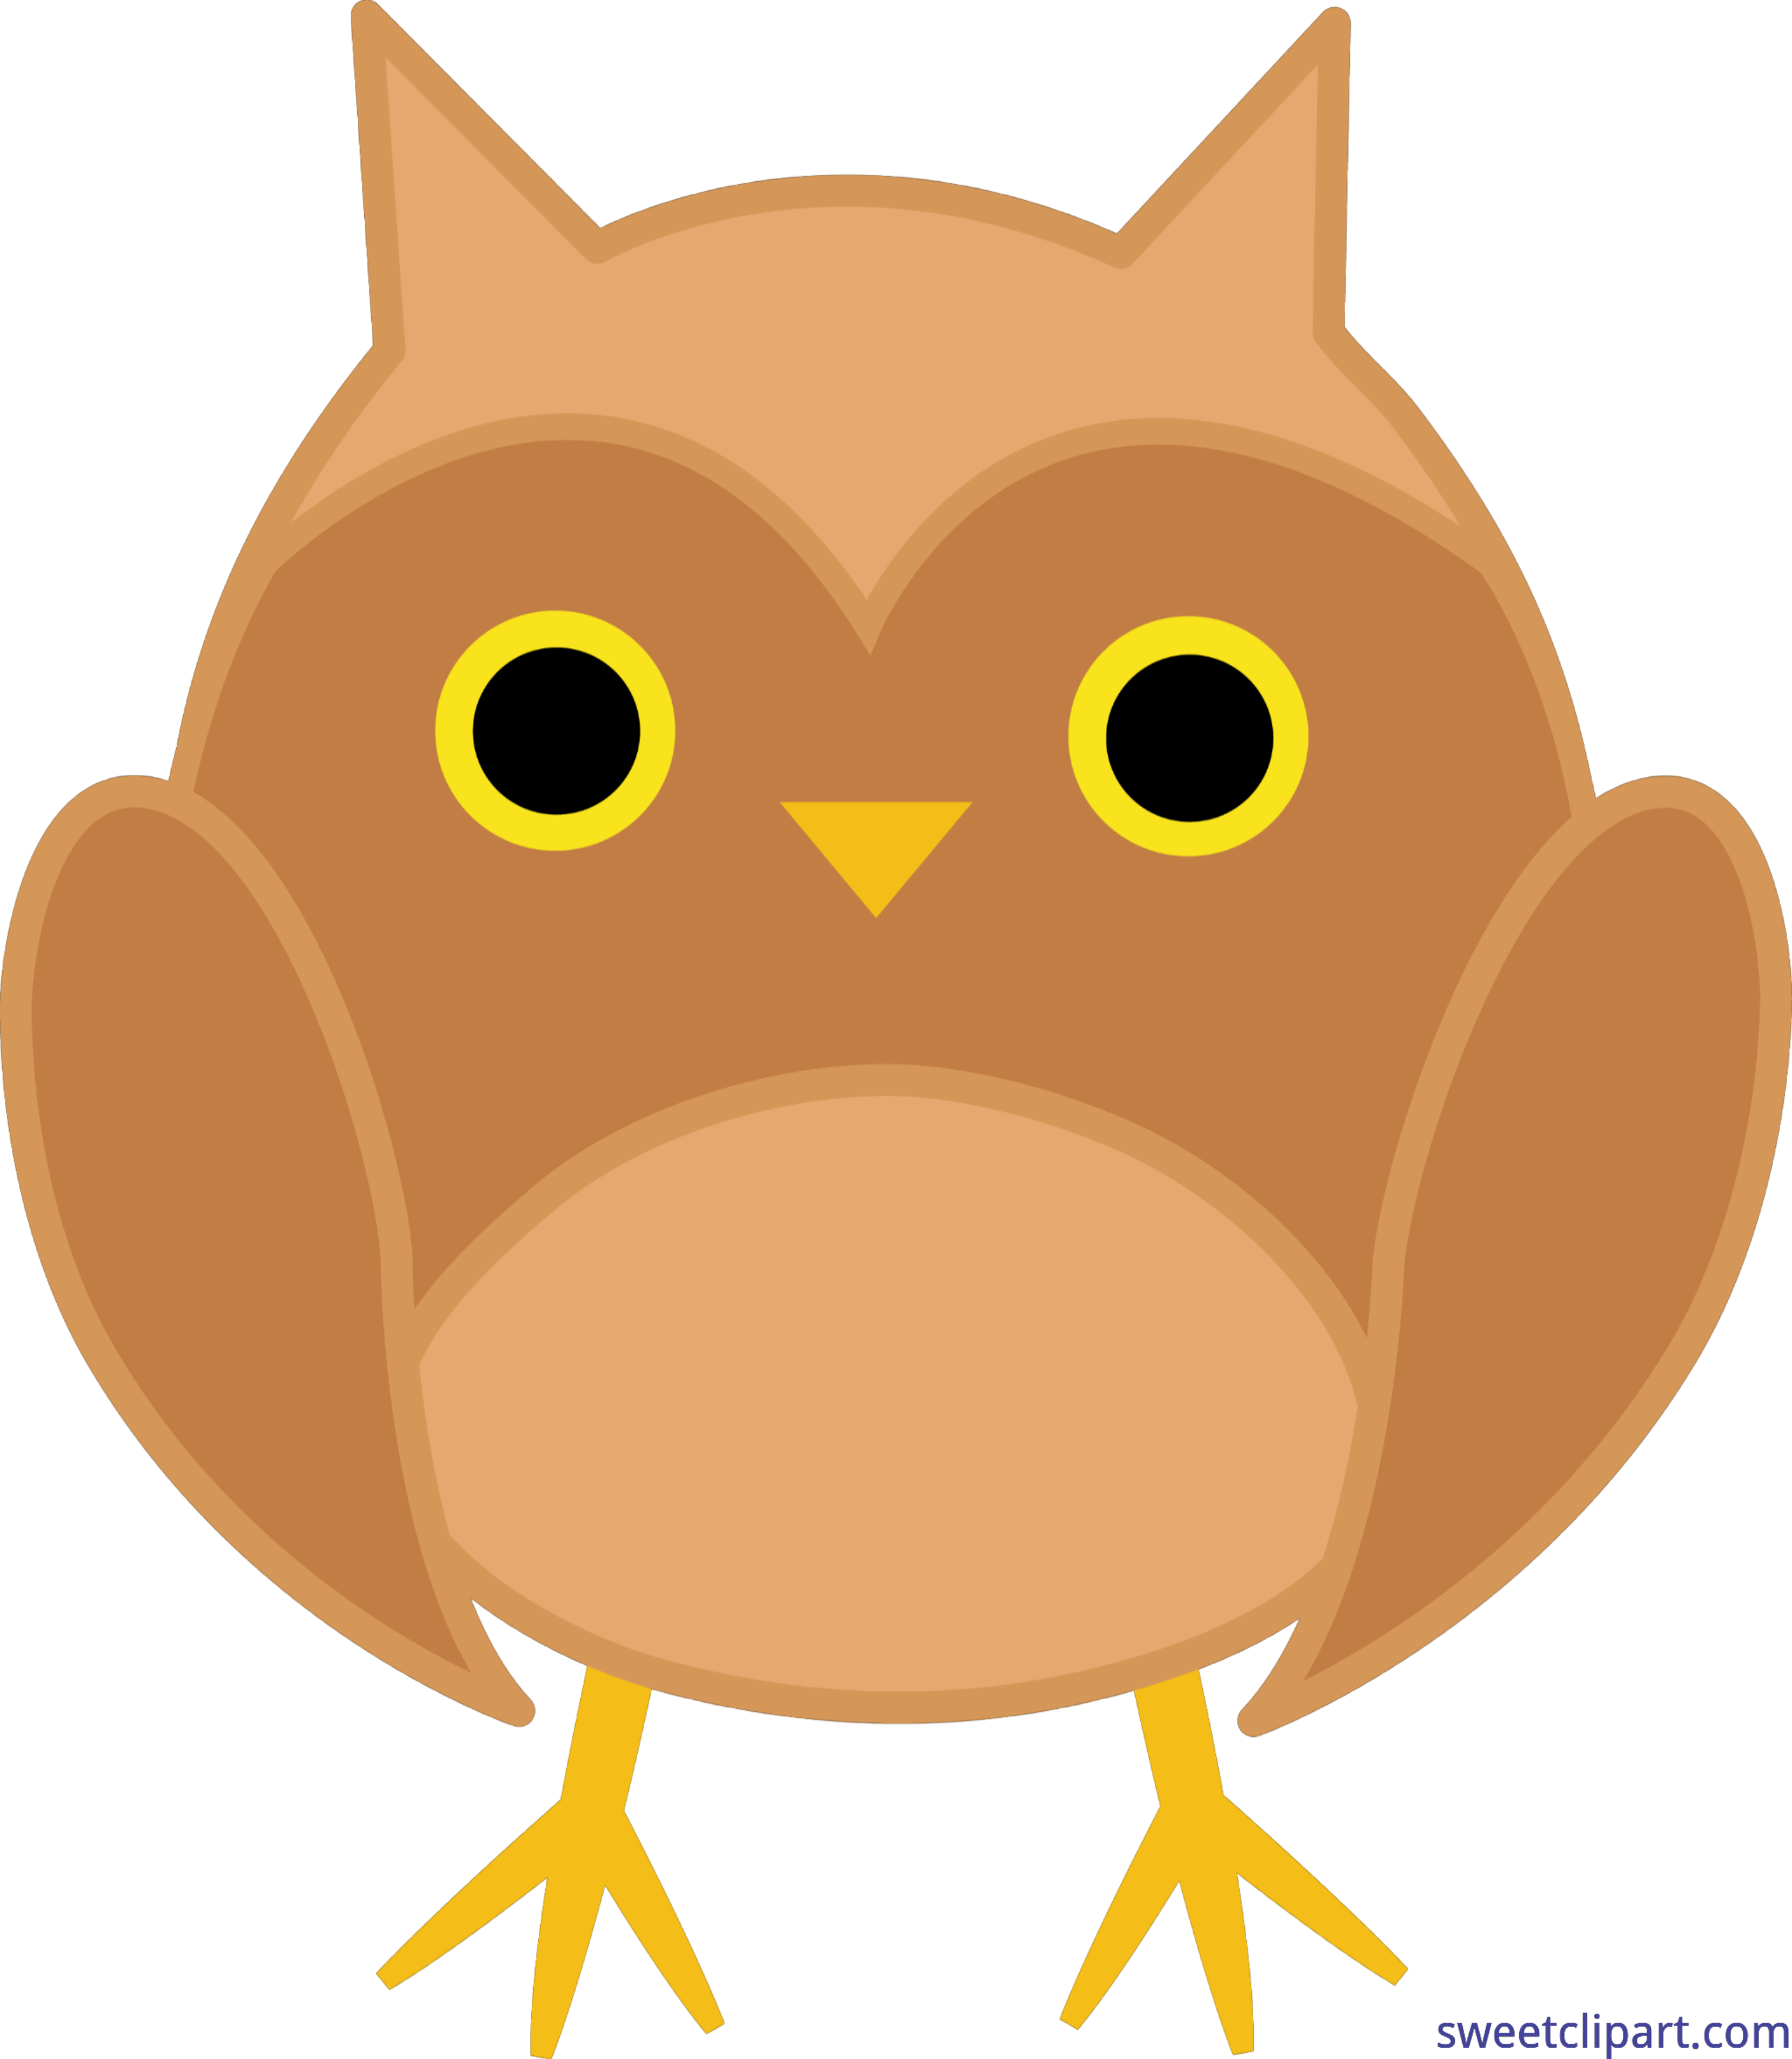 Owl with crown clipart banner royalty free library Owl Cute Brown Clip Art - Sweet Clip Art banner royalty free library